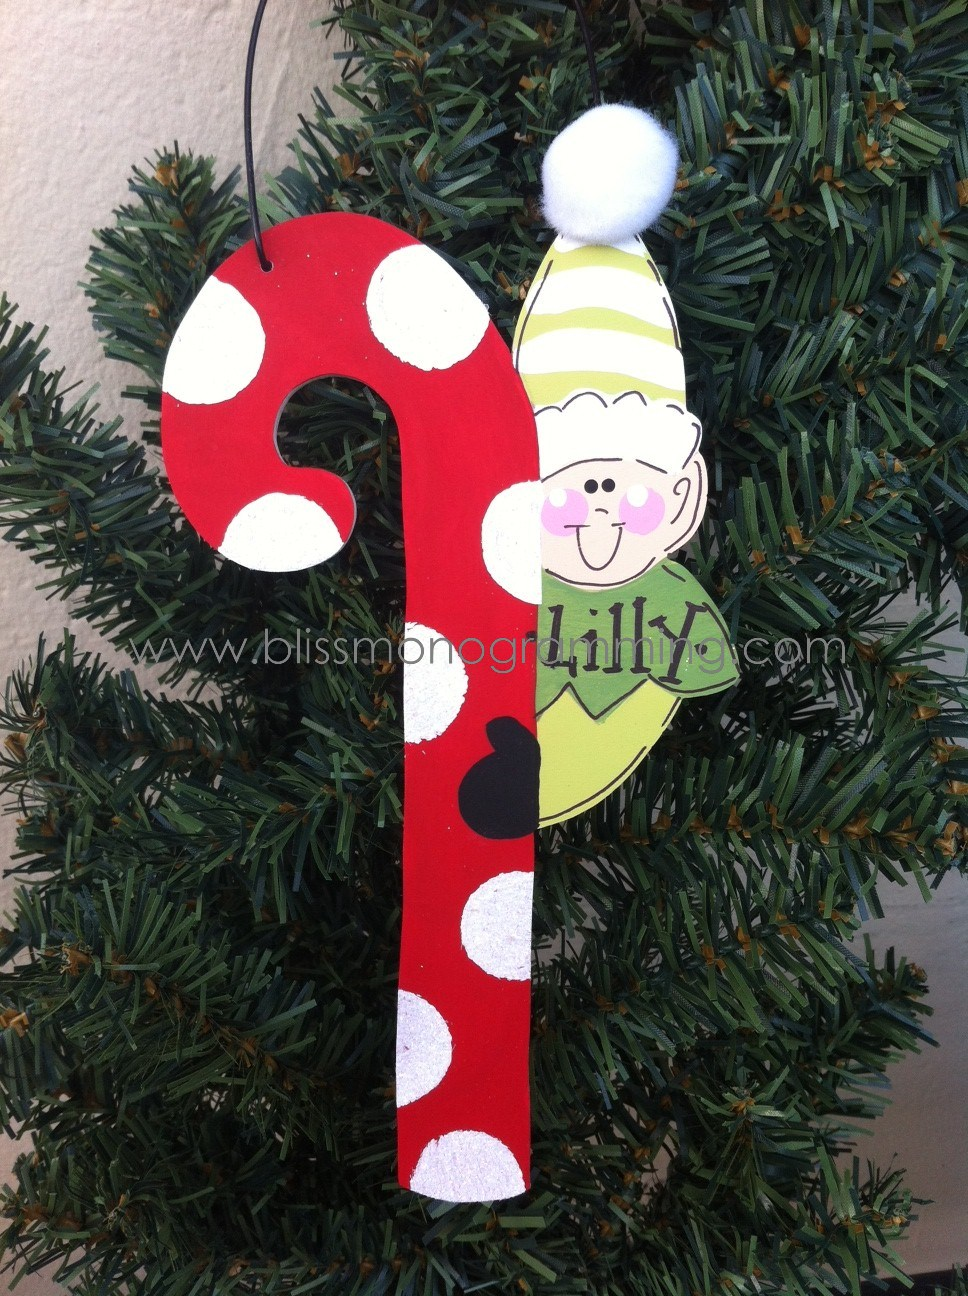 Large candy cane ornaments - Large Candy Cane Ornaments 3